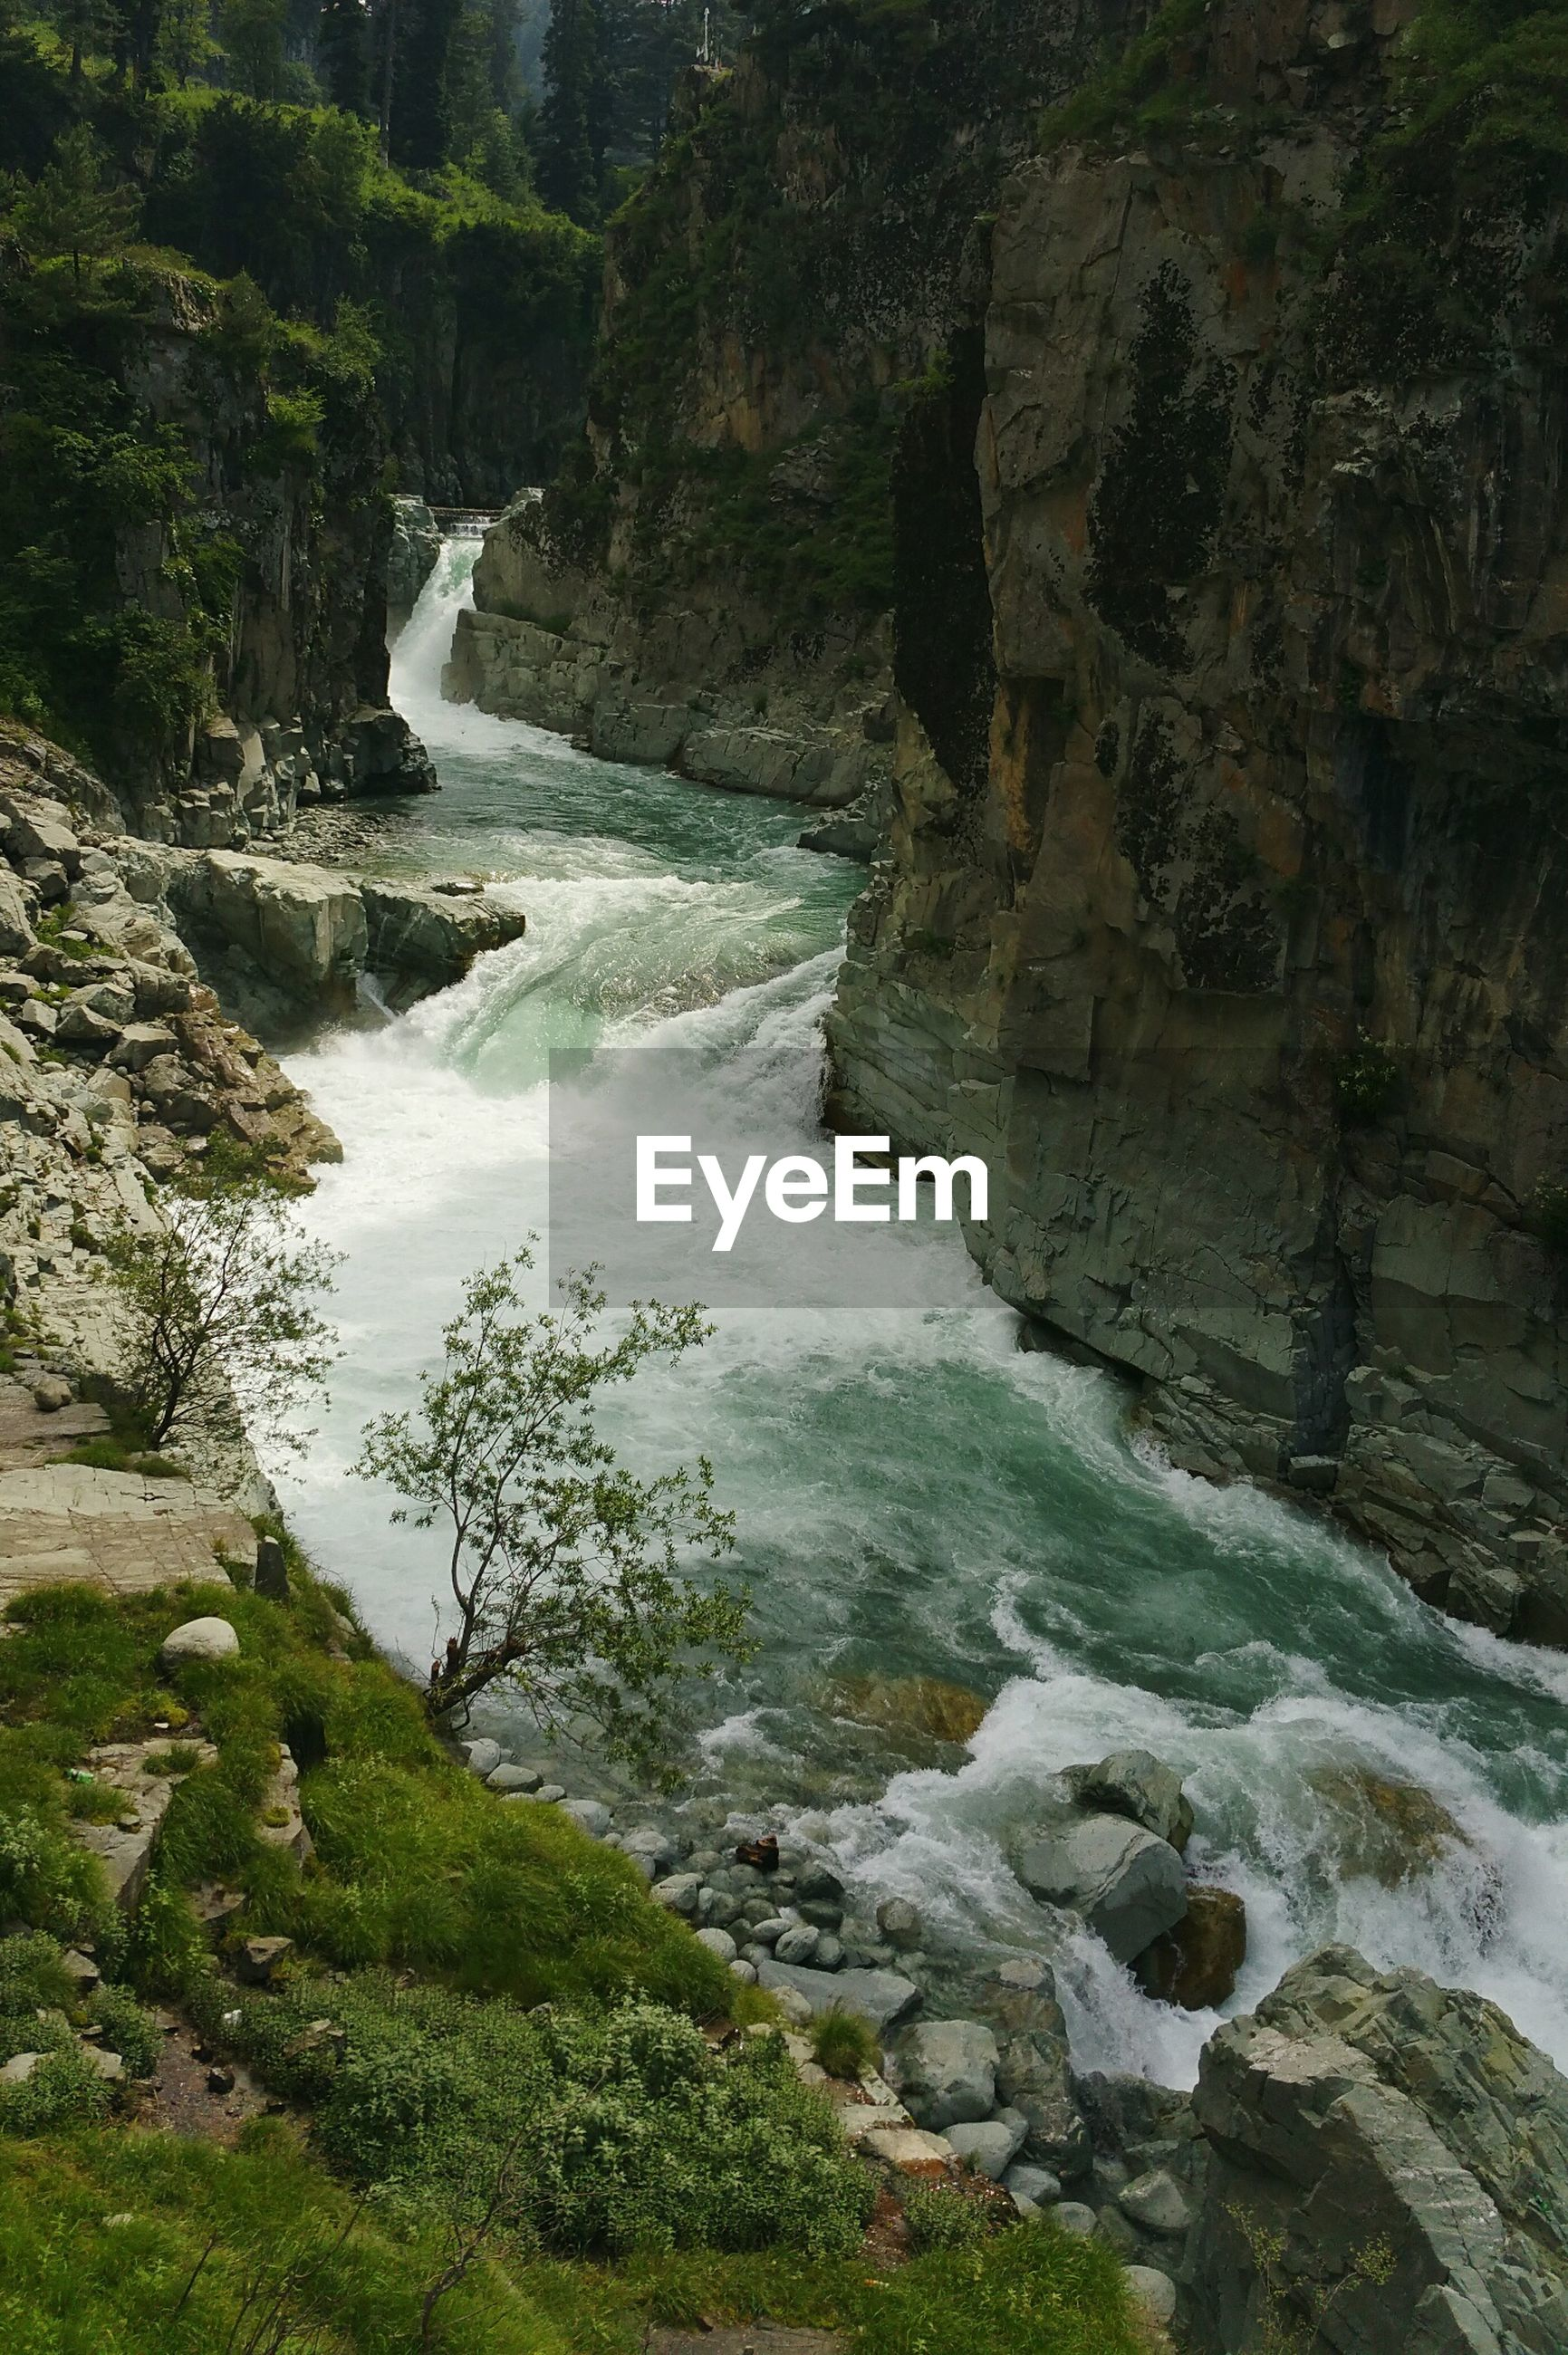 Scenic view of river flowing between mountains in forest